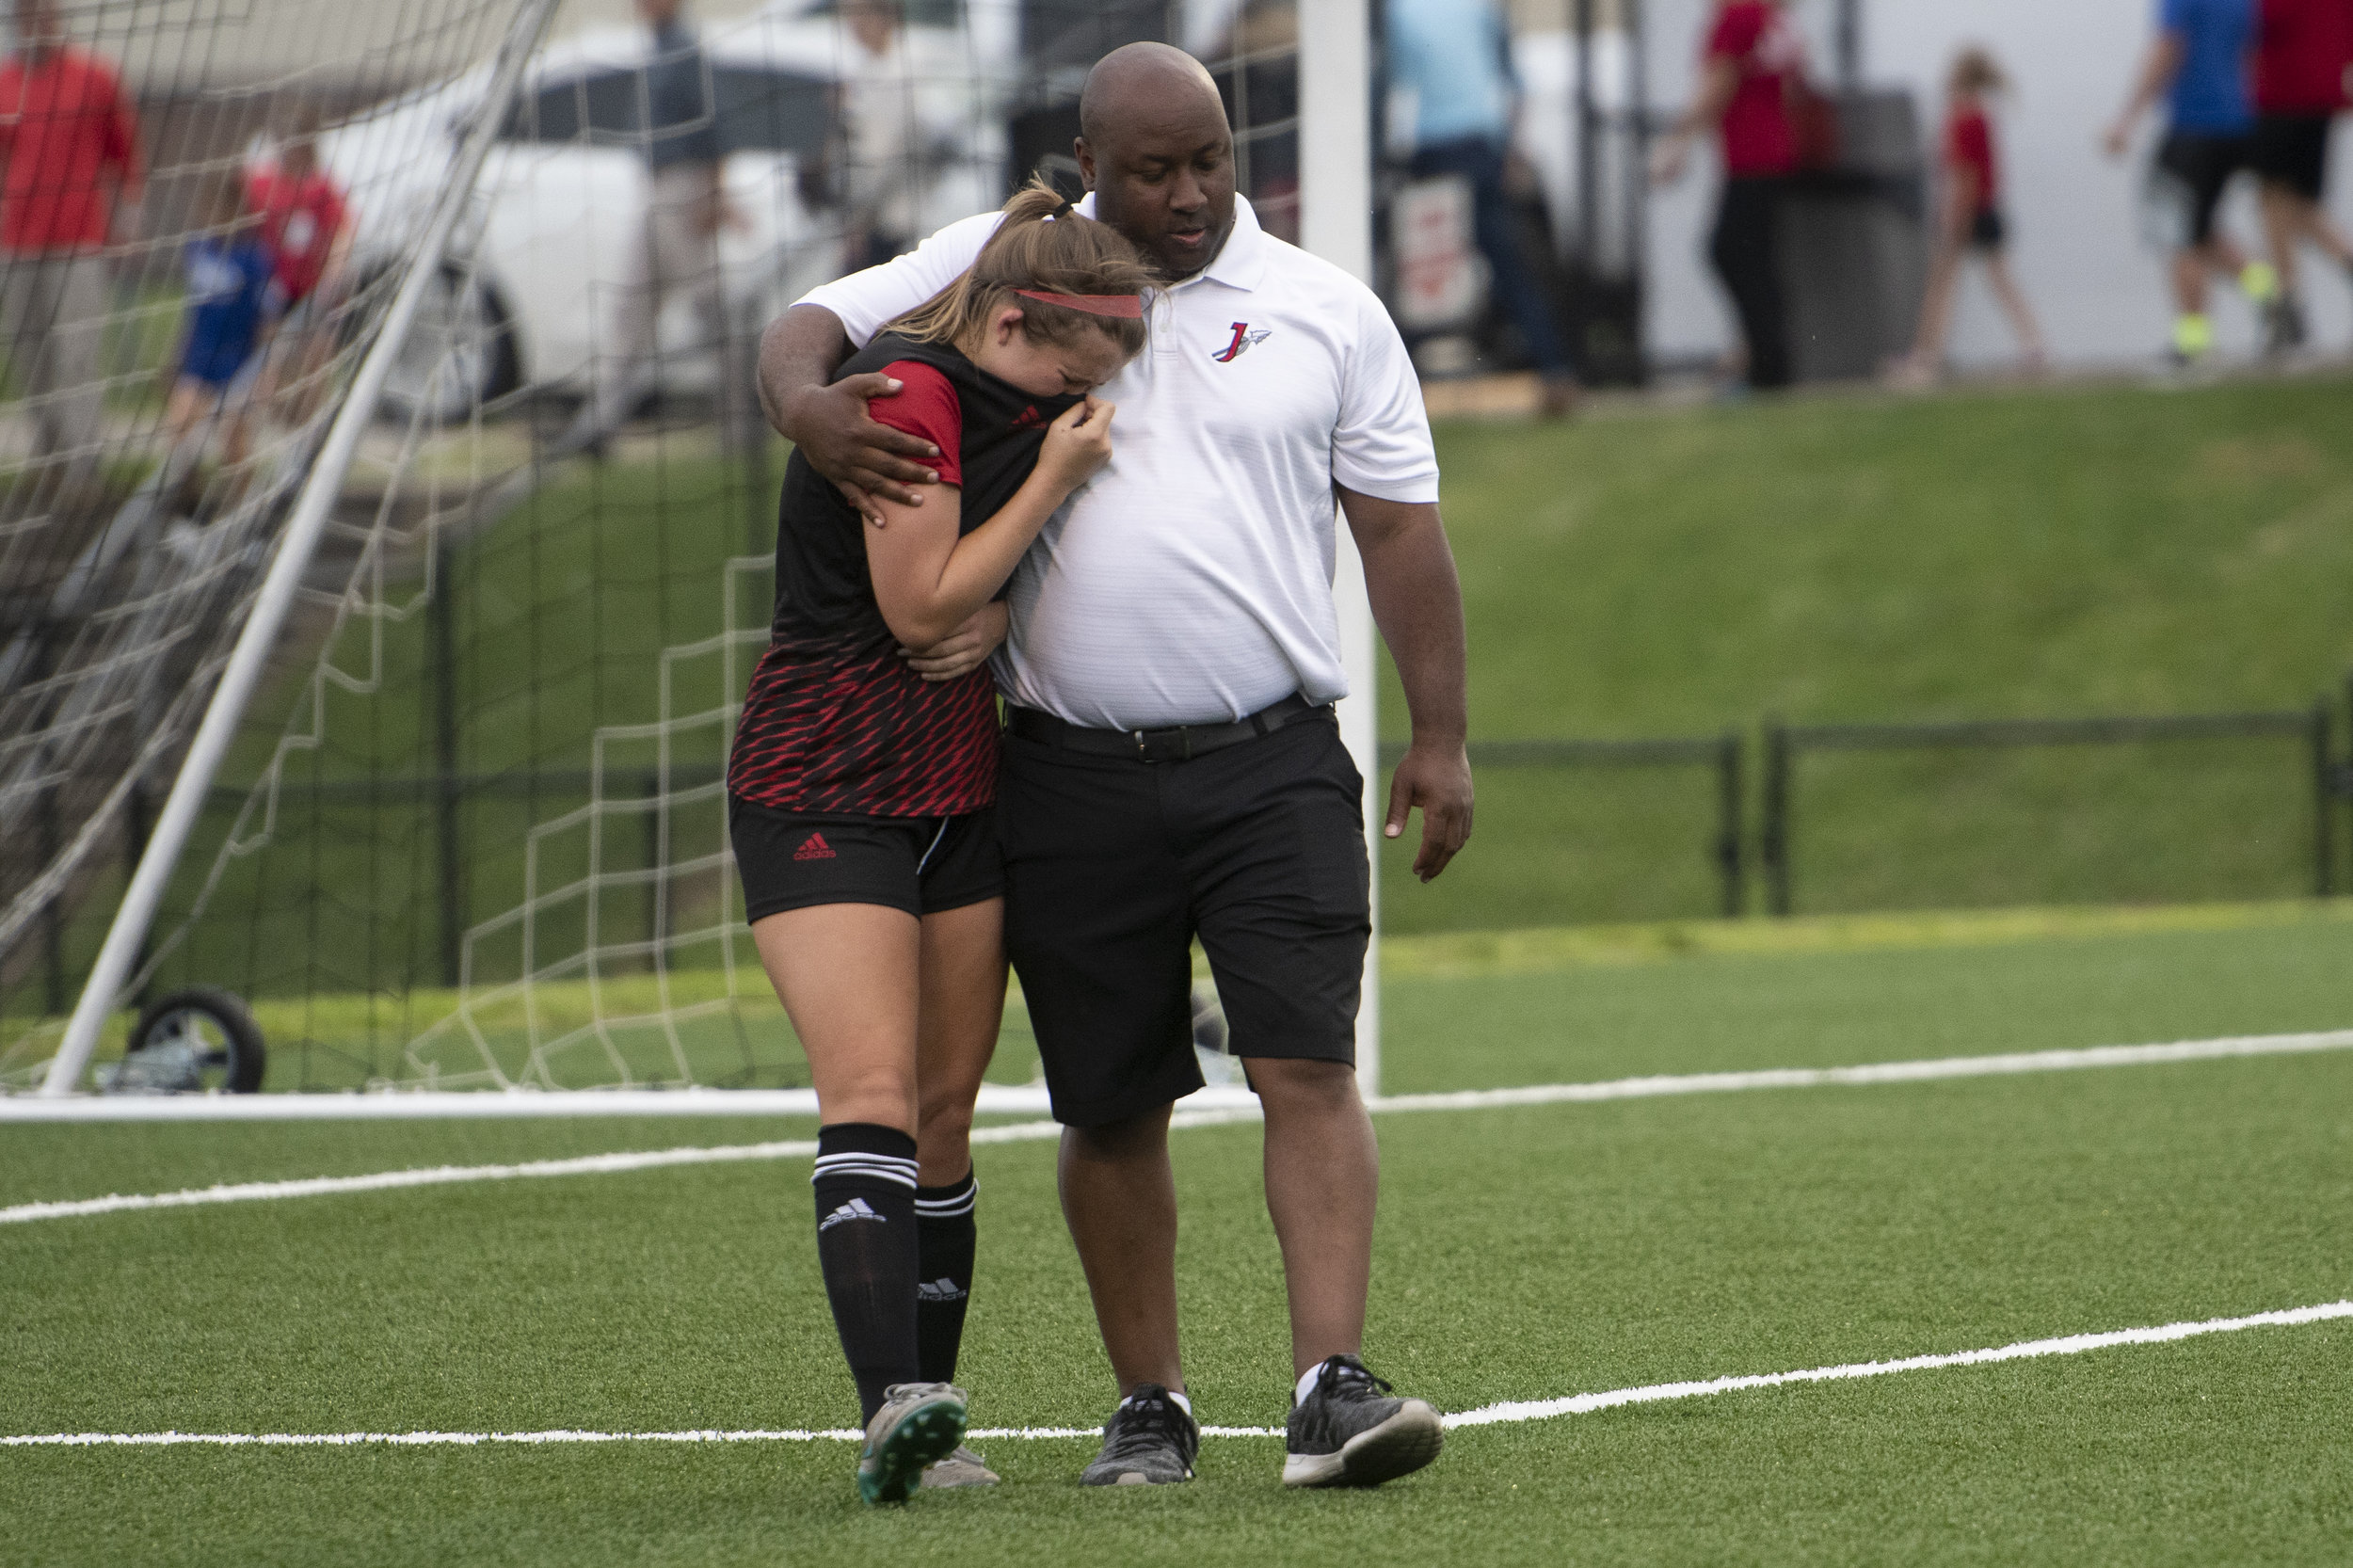 Following an opposing overtime goal ending the Jackson Indians' season, Jackson's Taylor Nelson (7) is consoled by head coach Justin McMullen shortly after the Indians' 2-1 overtime loss to Lindbergh High School in the Class 4 sectionals Tuesday, May 21, 2019, in Jackson. Jacob Wiegand | Southeast Missourian